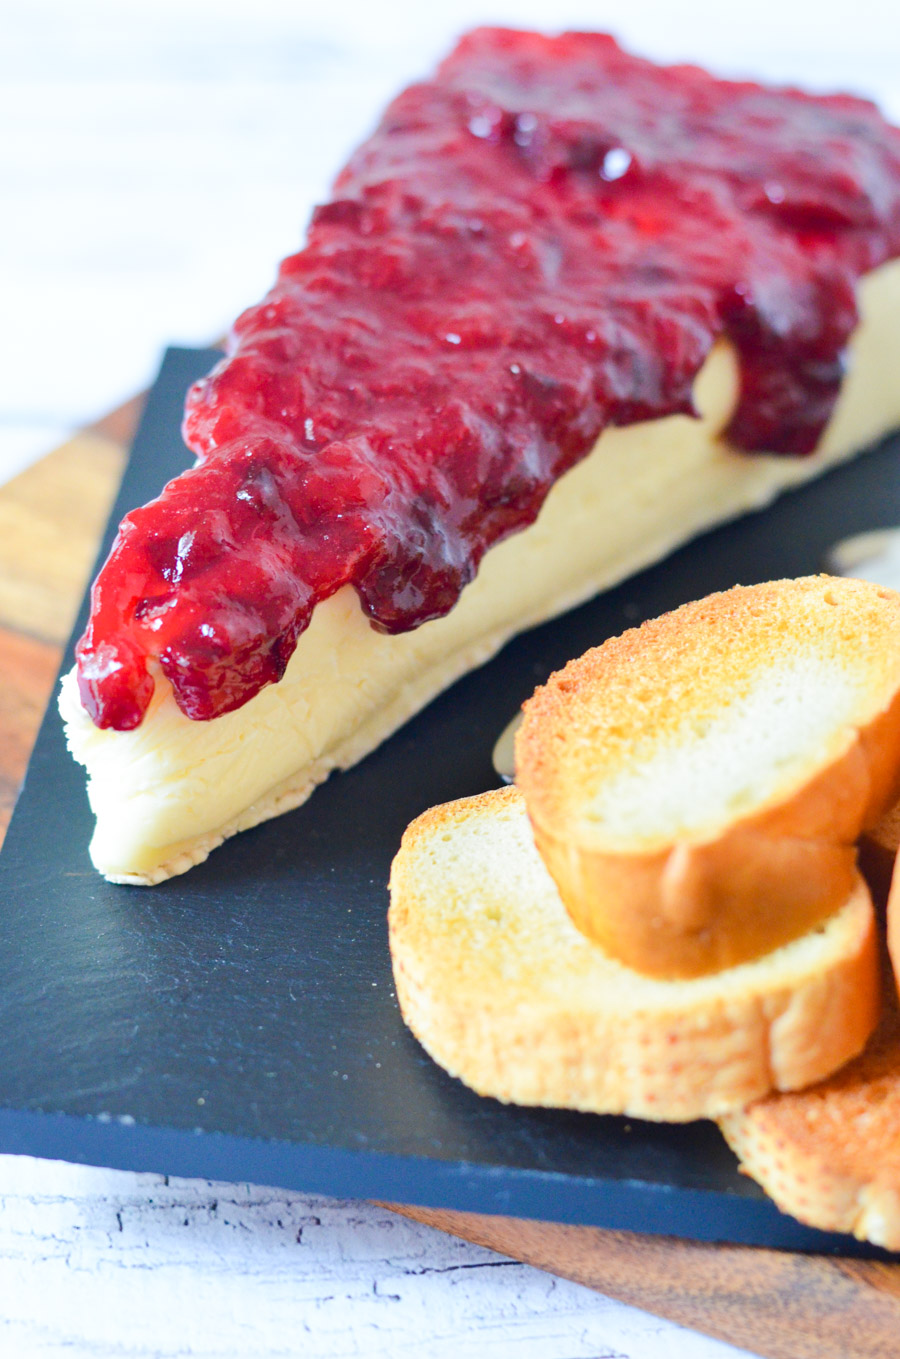 Homemade Honey + Plum Jam Recipe w. Brie and Crostinis | Easy Summer Appetizer